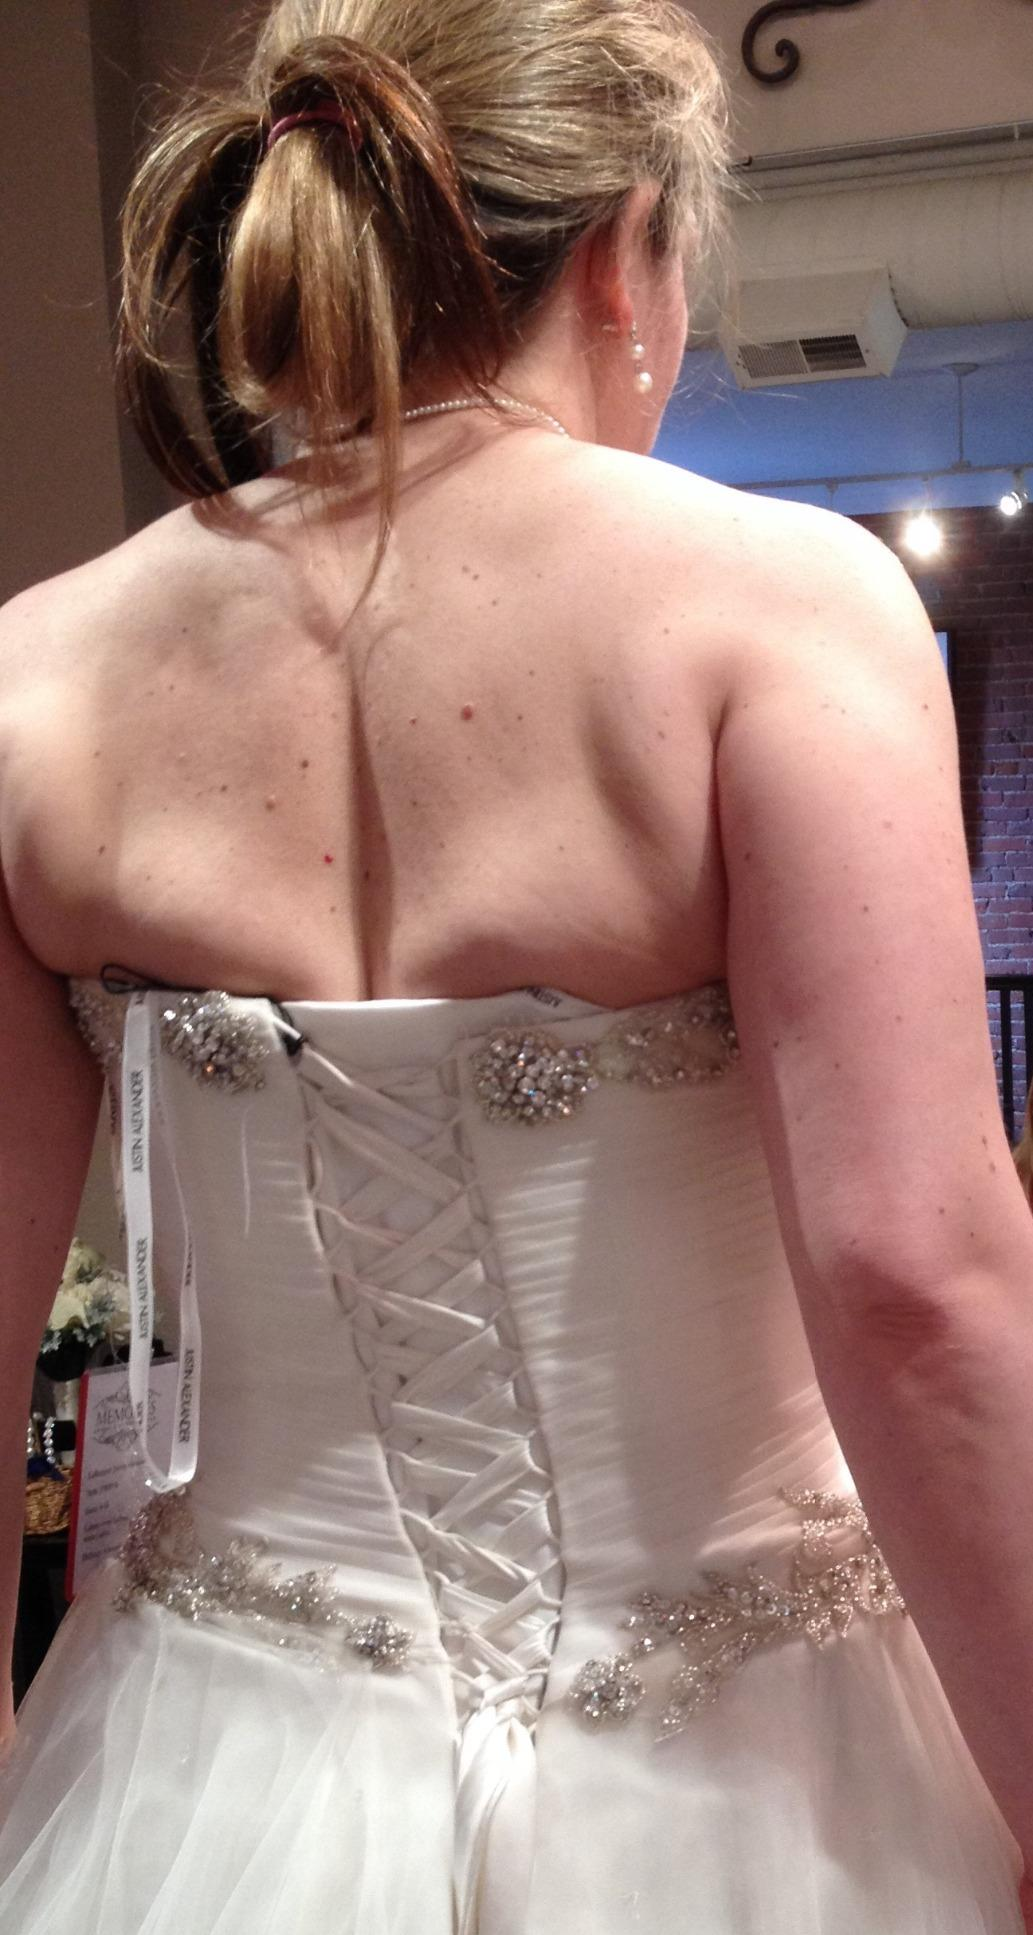 Alternative Uses for RockTape: Every Bride Needs to Know this Trick!